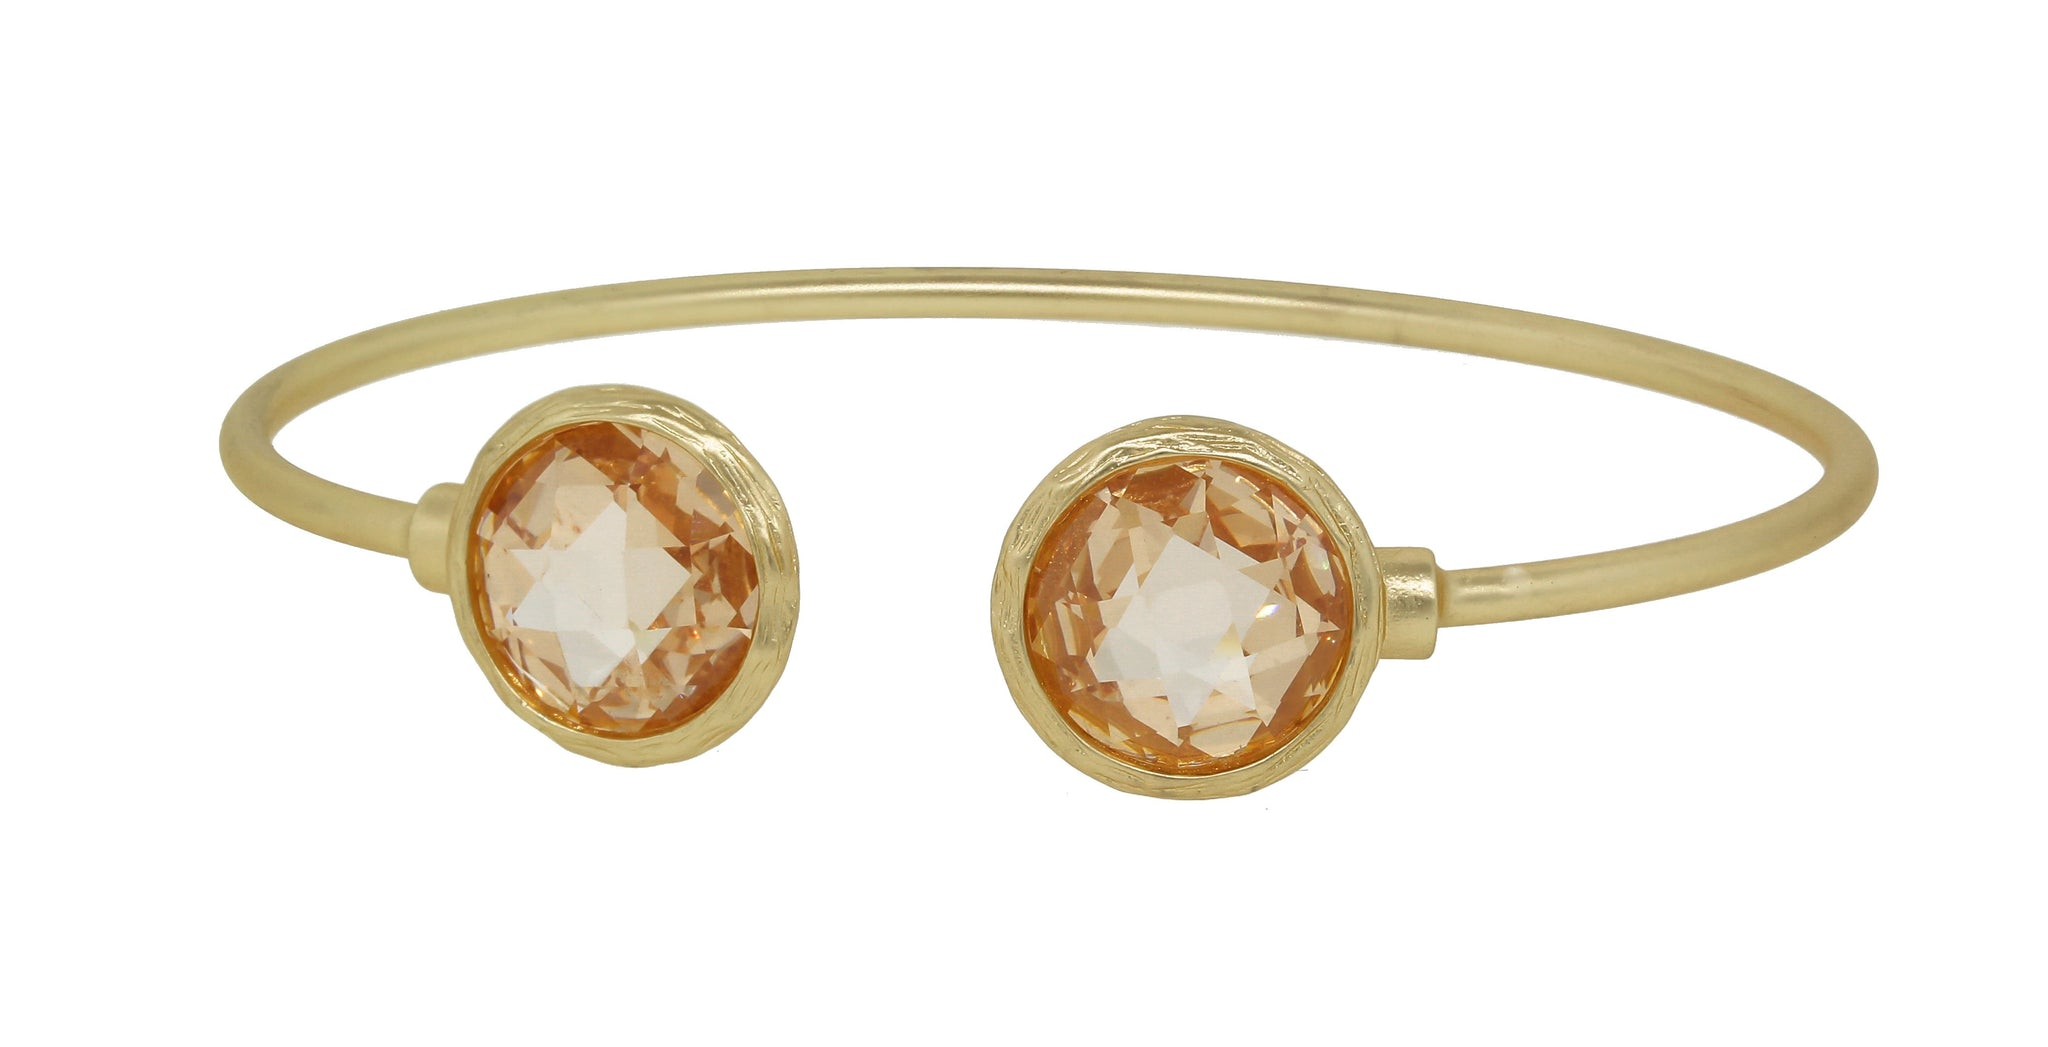 Thin Satin Gold Cuff Bangles with Round Stone Ends 681B5688